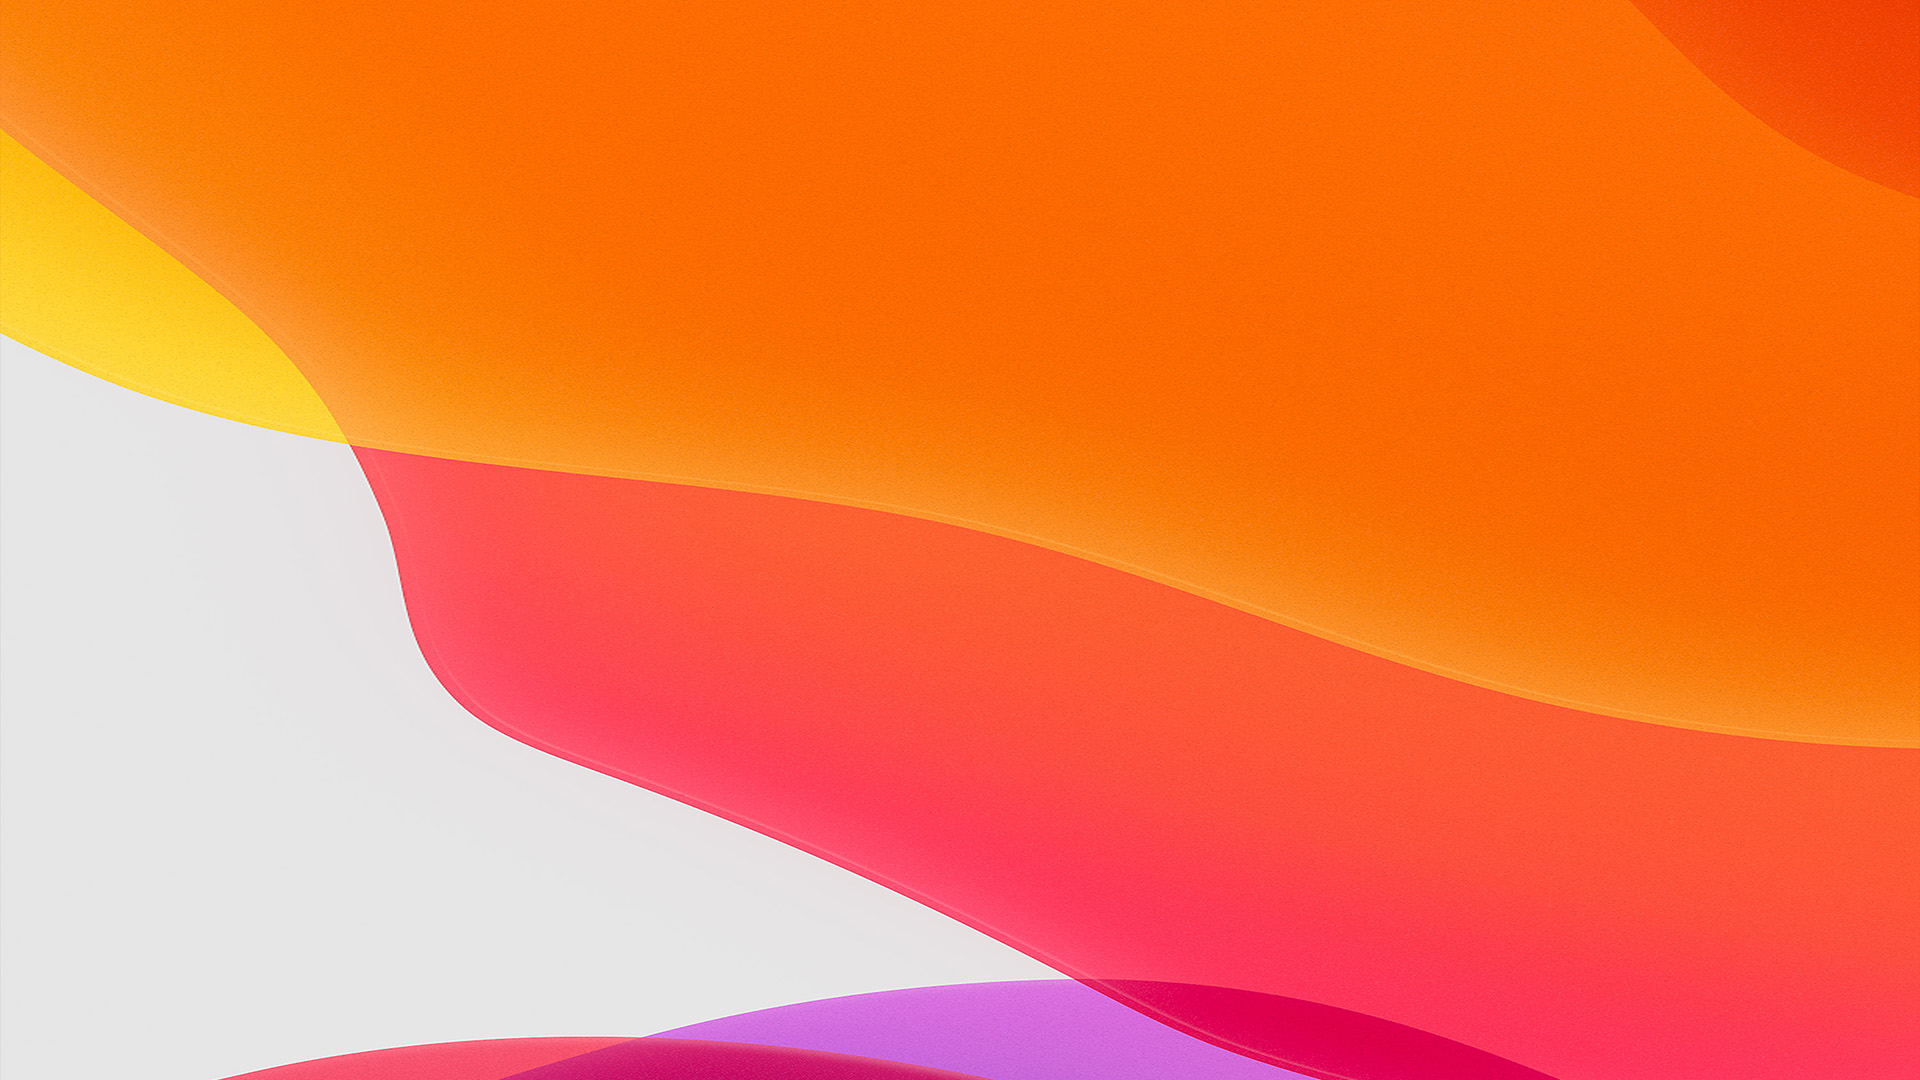 papers.co bj42 apple iphone ios13 background orange art 25 wallpaper